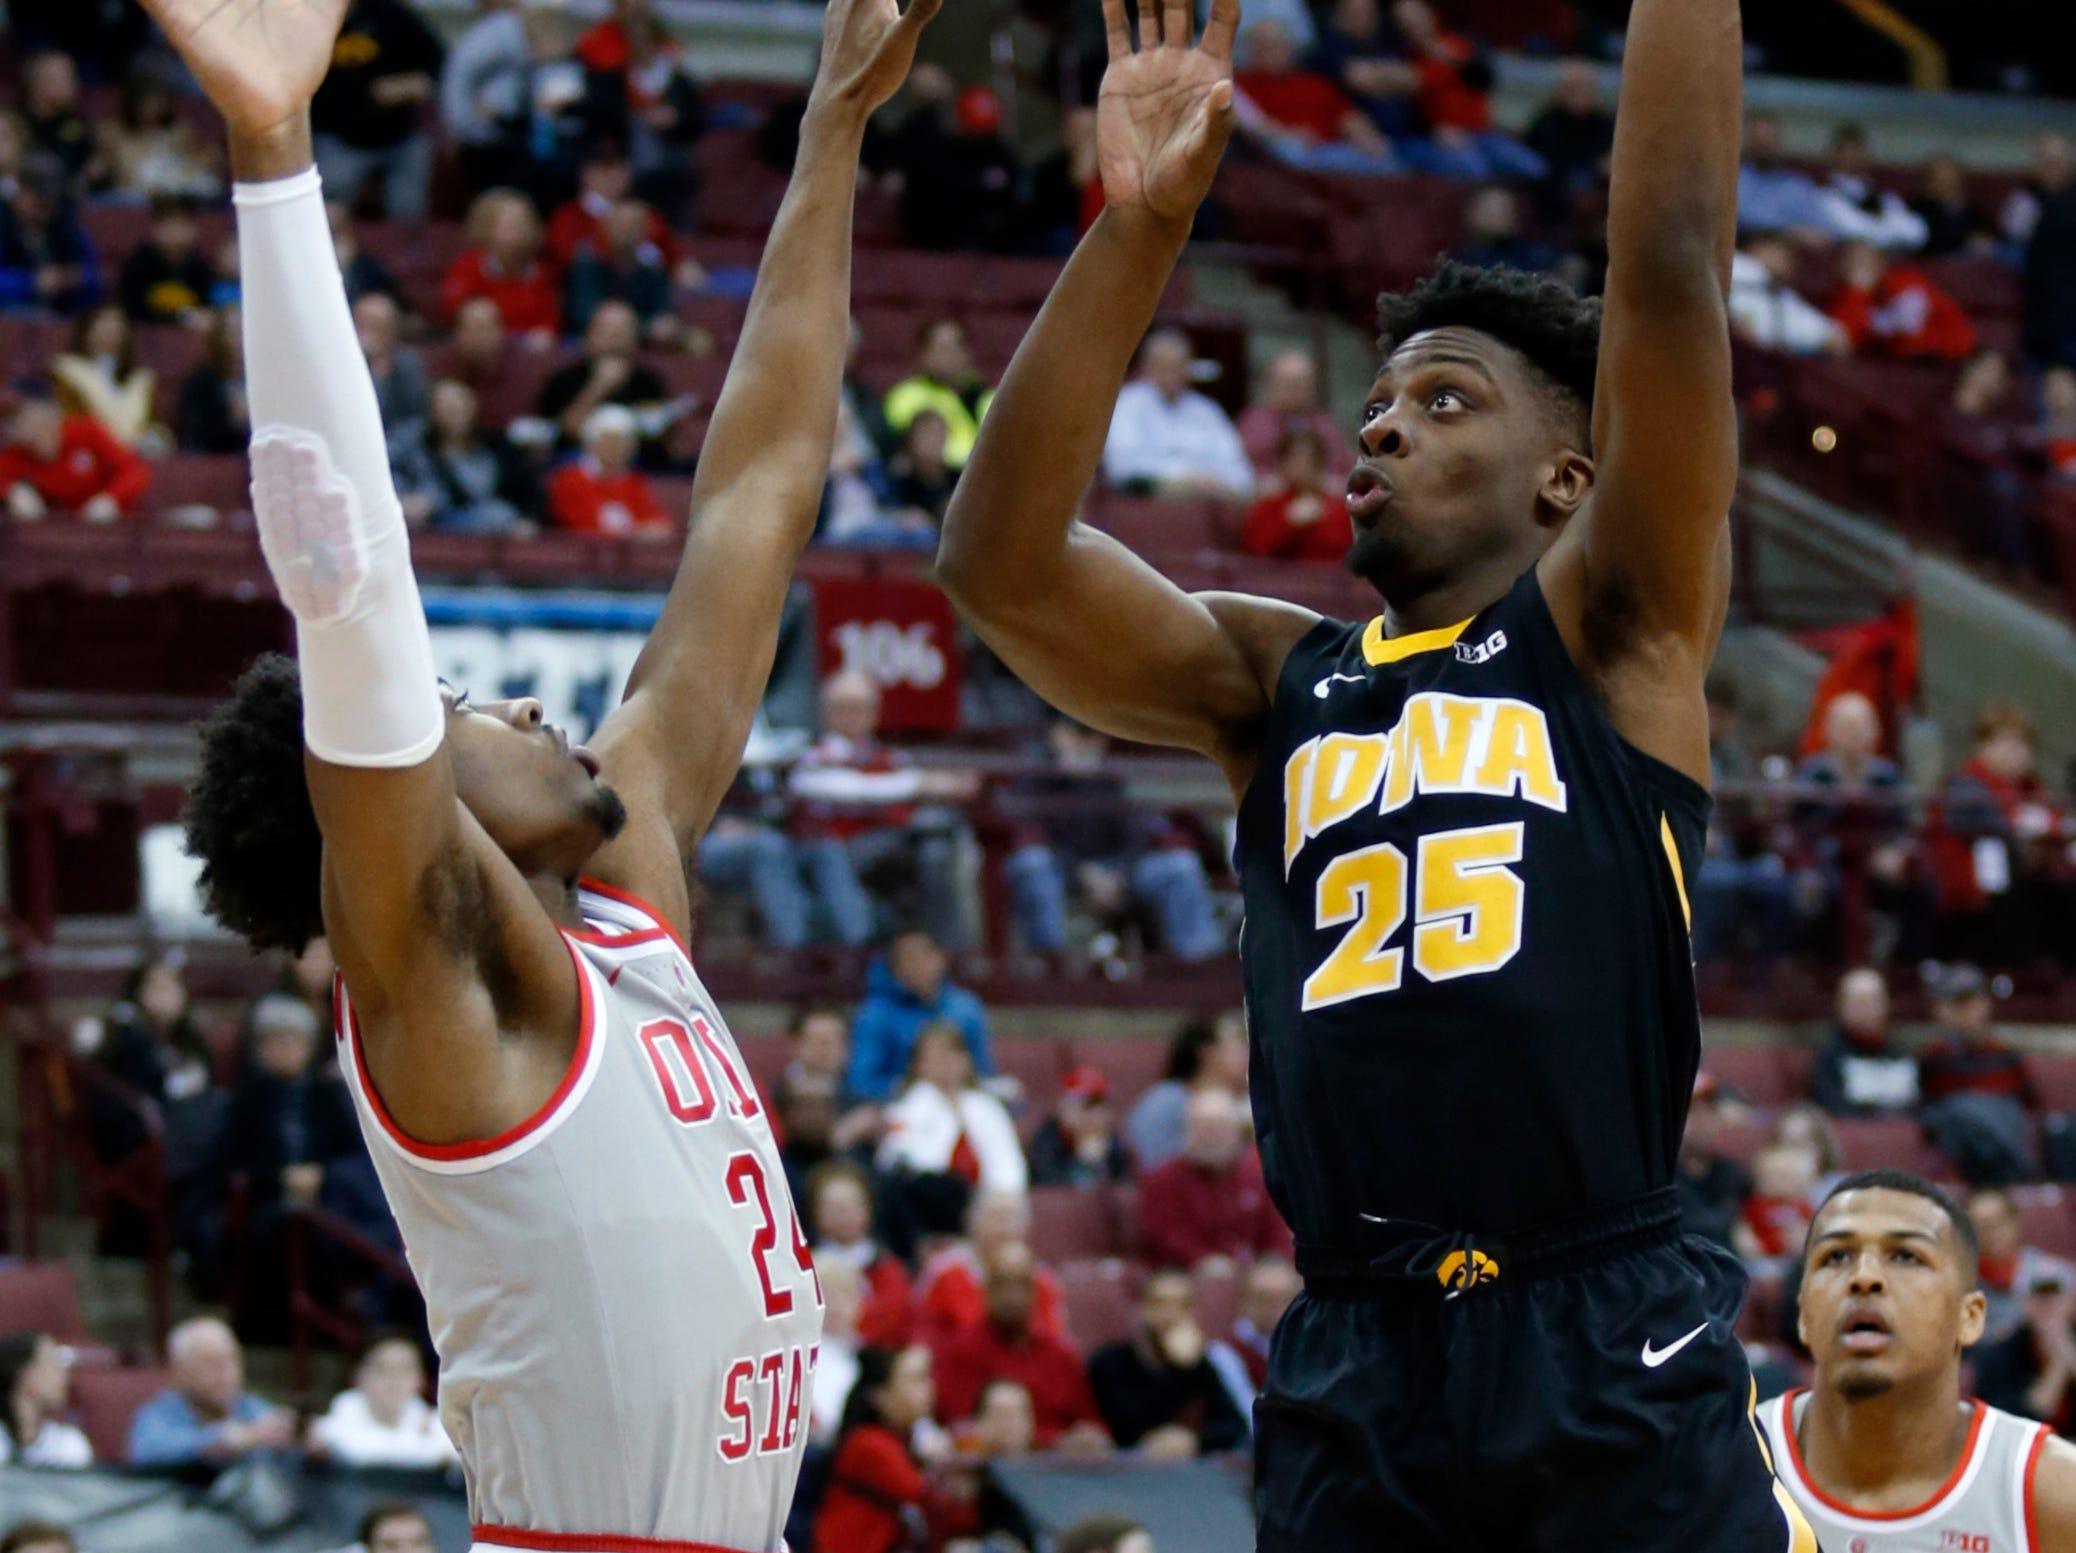 Iowa forward Tyler Cook, right, goes up for a shot against Ohio State forward Andre Wesson during the first half of an NCAA college basketball game in Columbus, Ohio, Tuesday, Feb. 26, 2019.